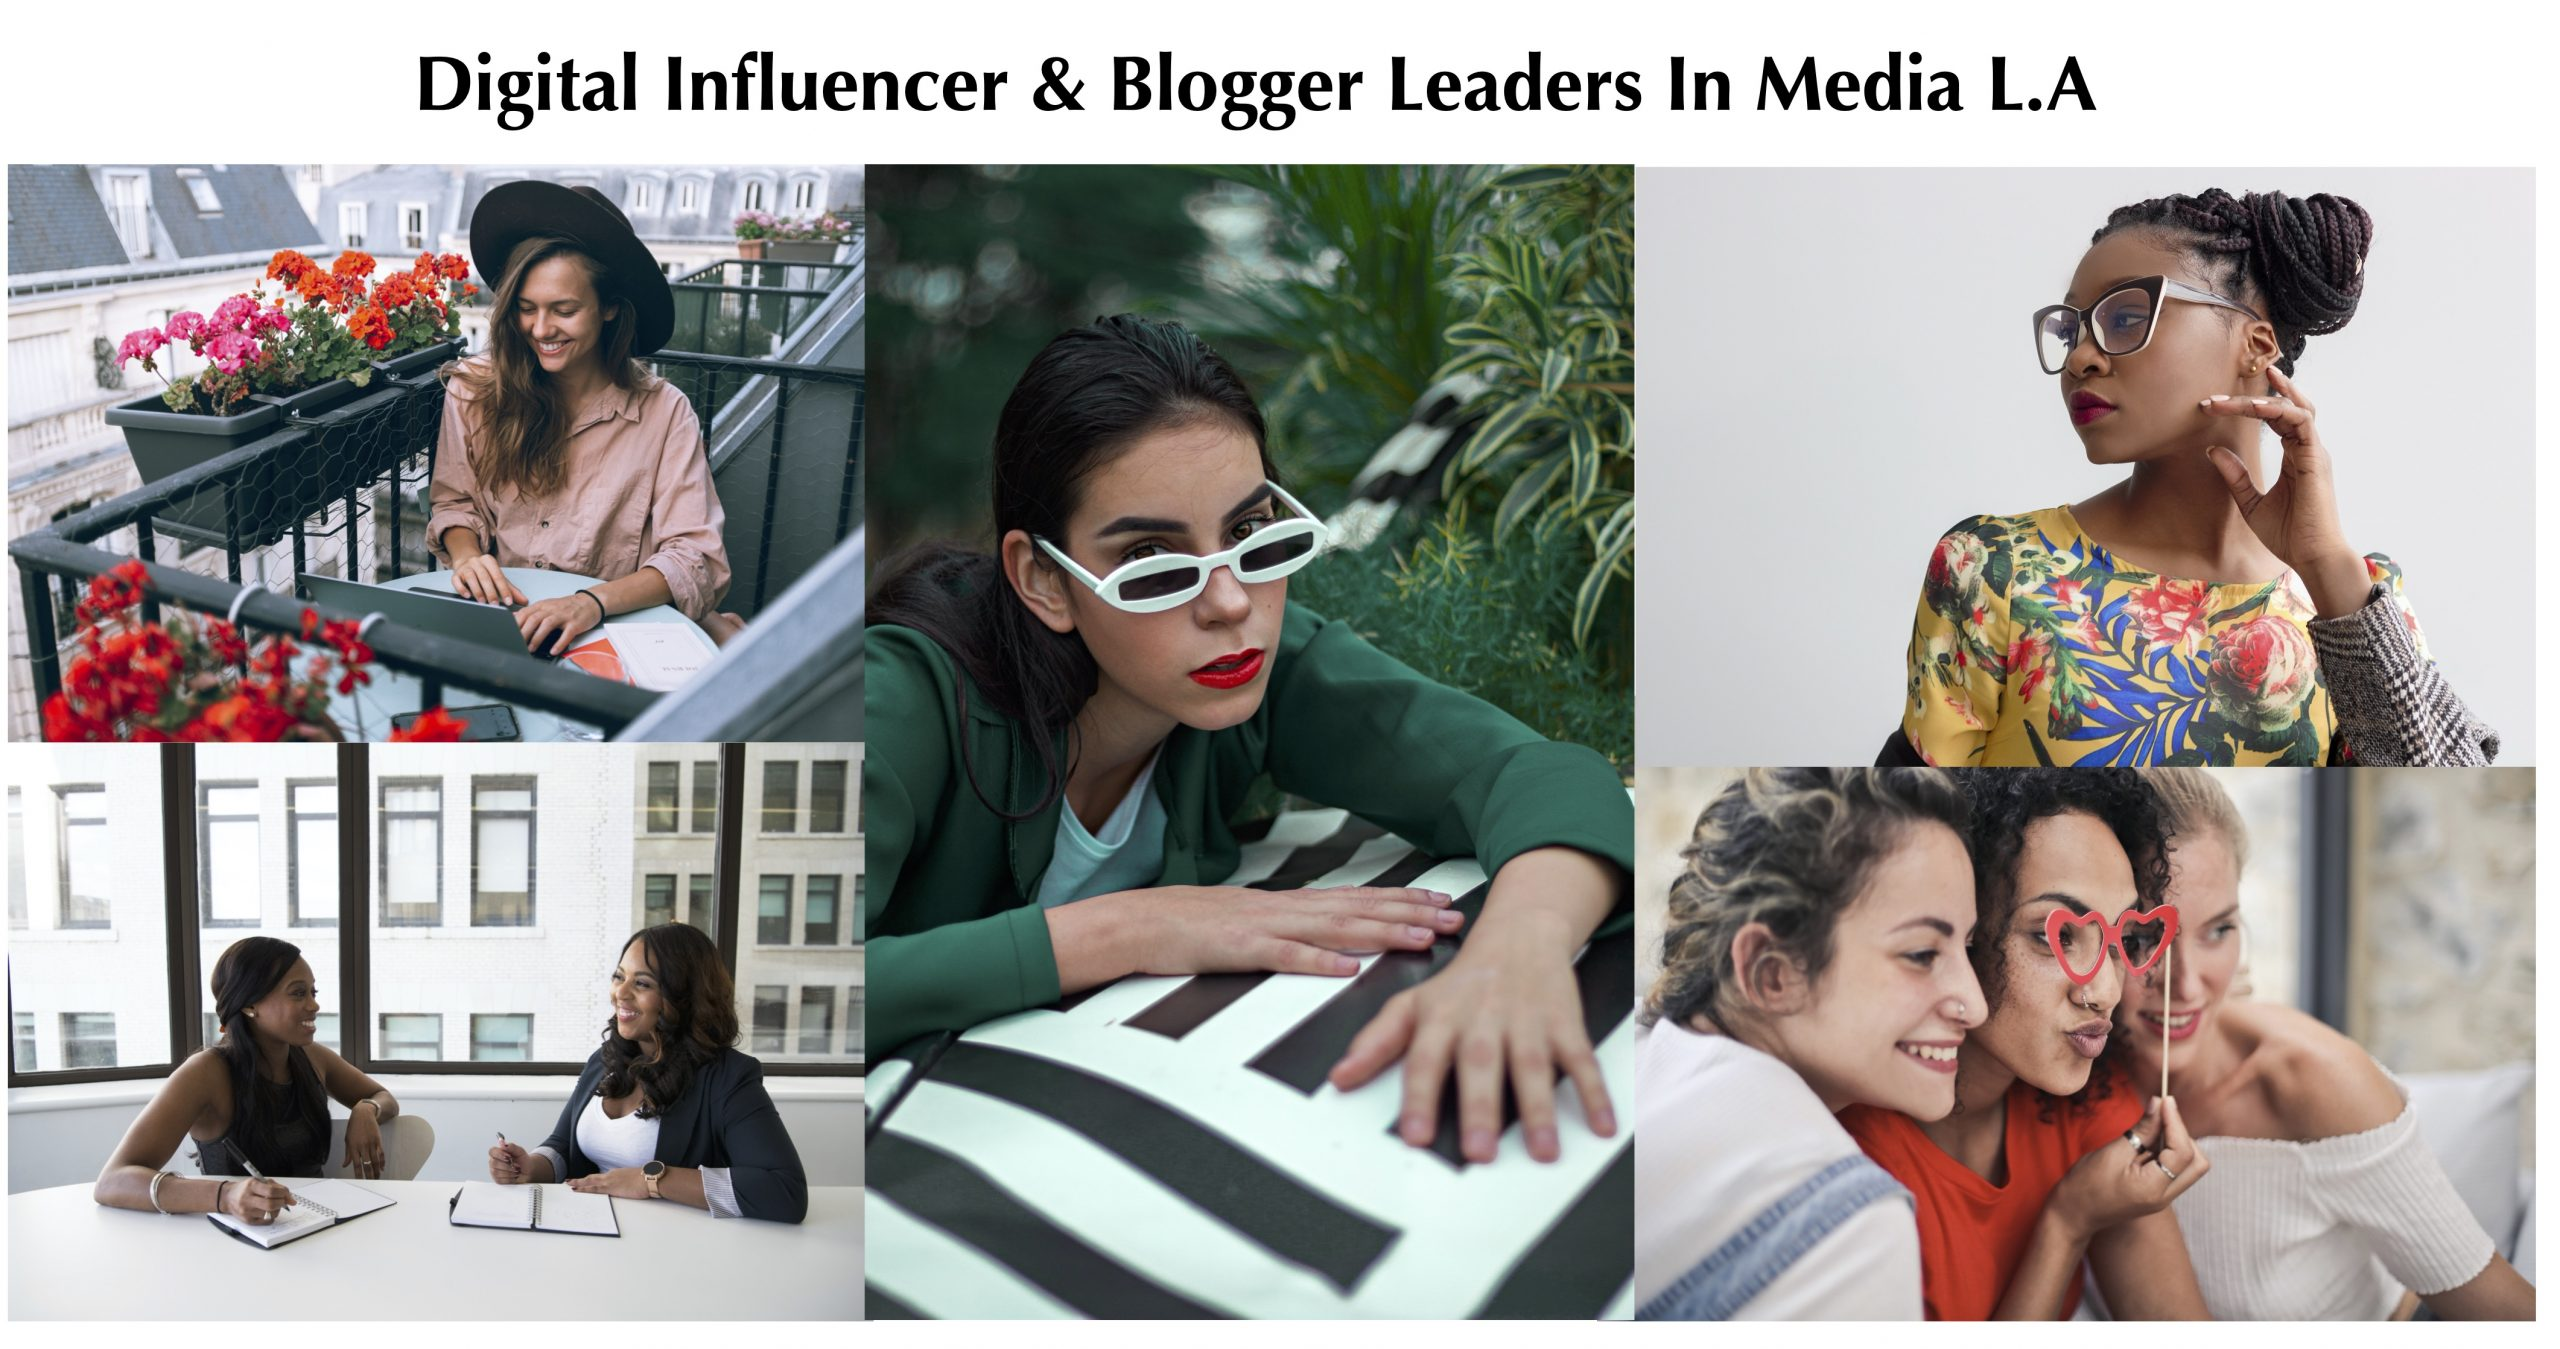 Digital Influencer & Blogger Leaders In Media Los Angeles